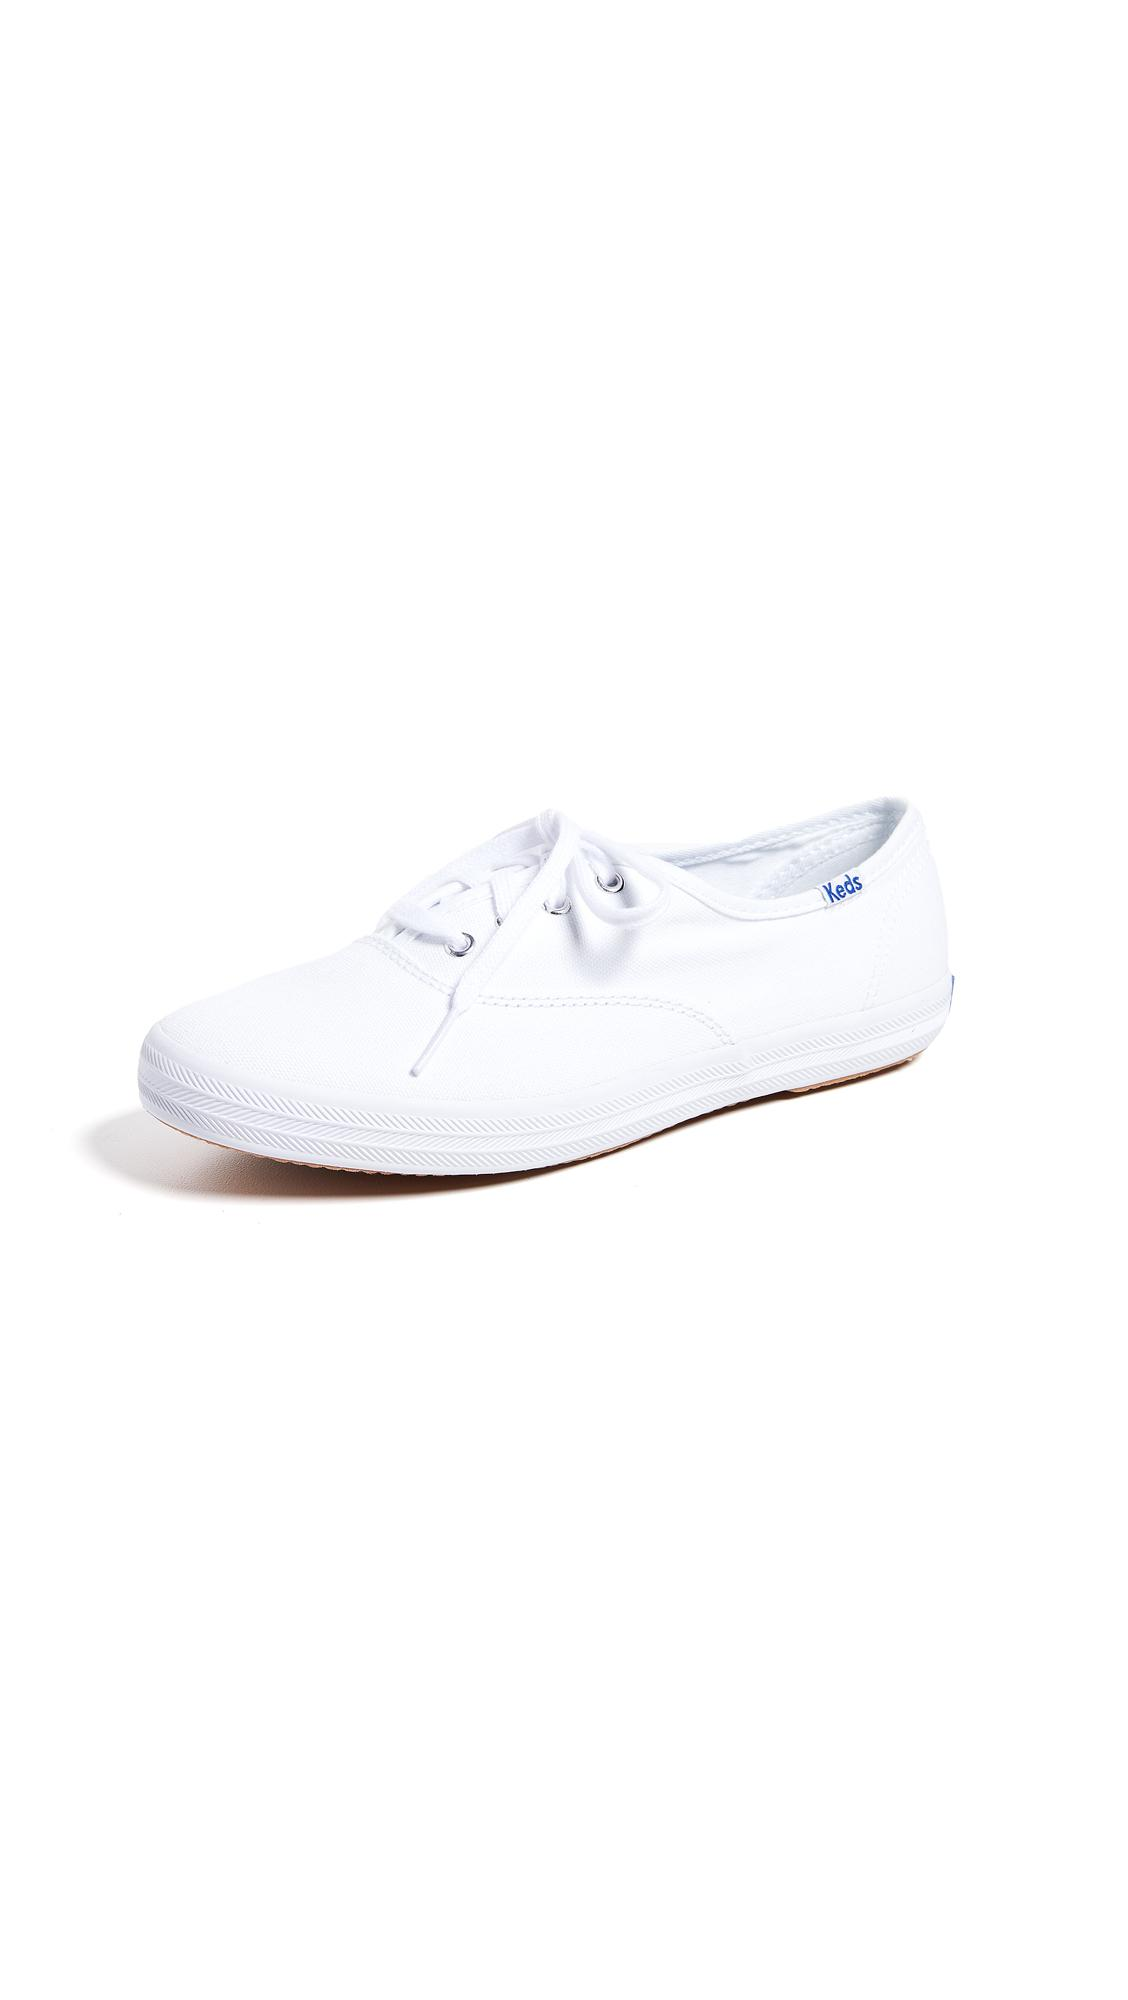 65f73202be9 Keds Champion Sneakers In White